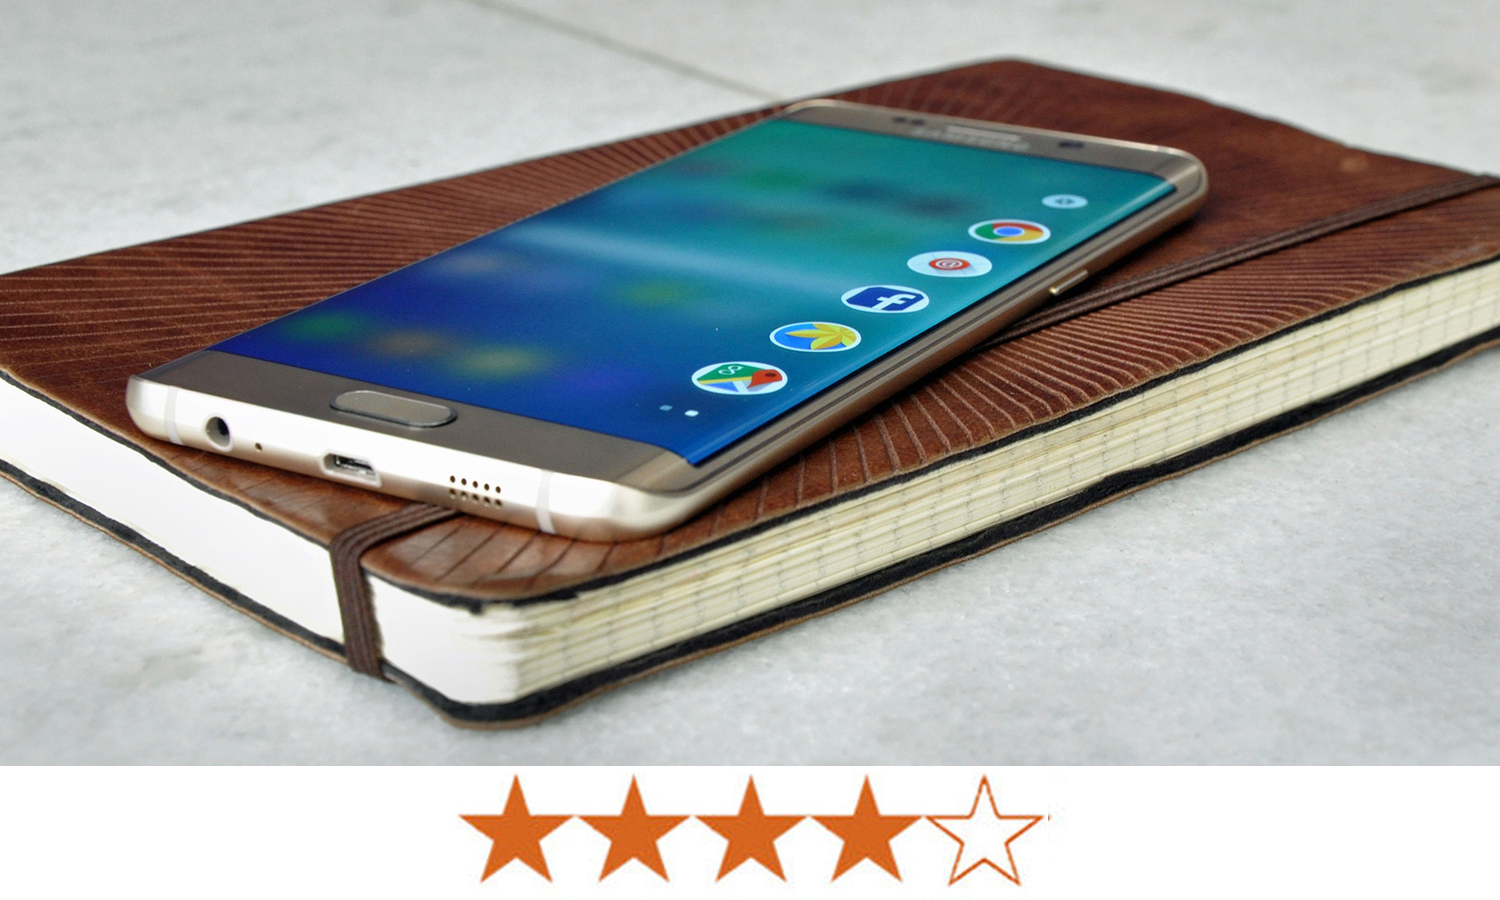 Samsung Galaxy S6 Edge Plus Review Is It Good For Business